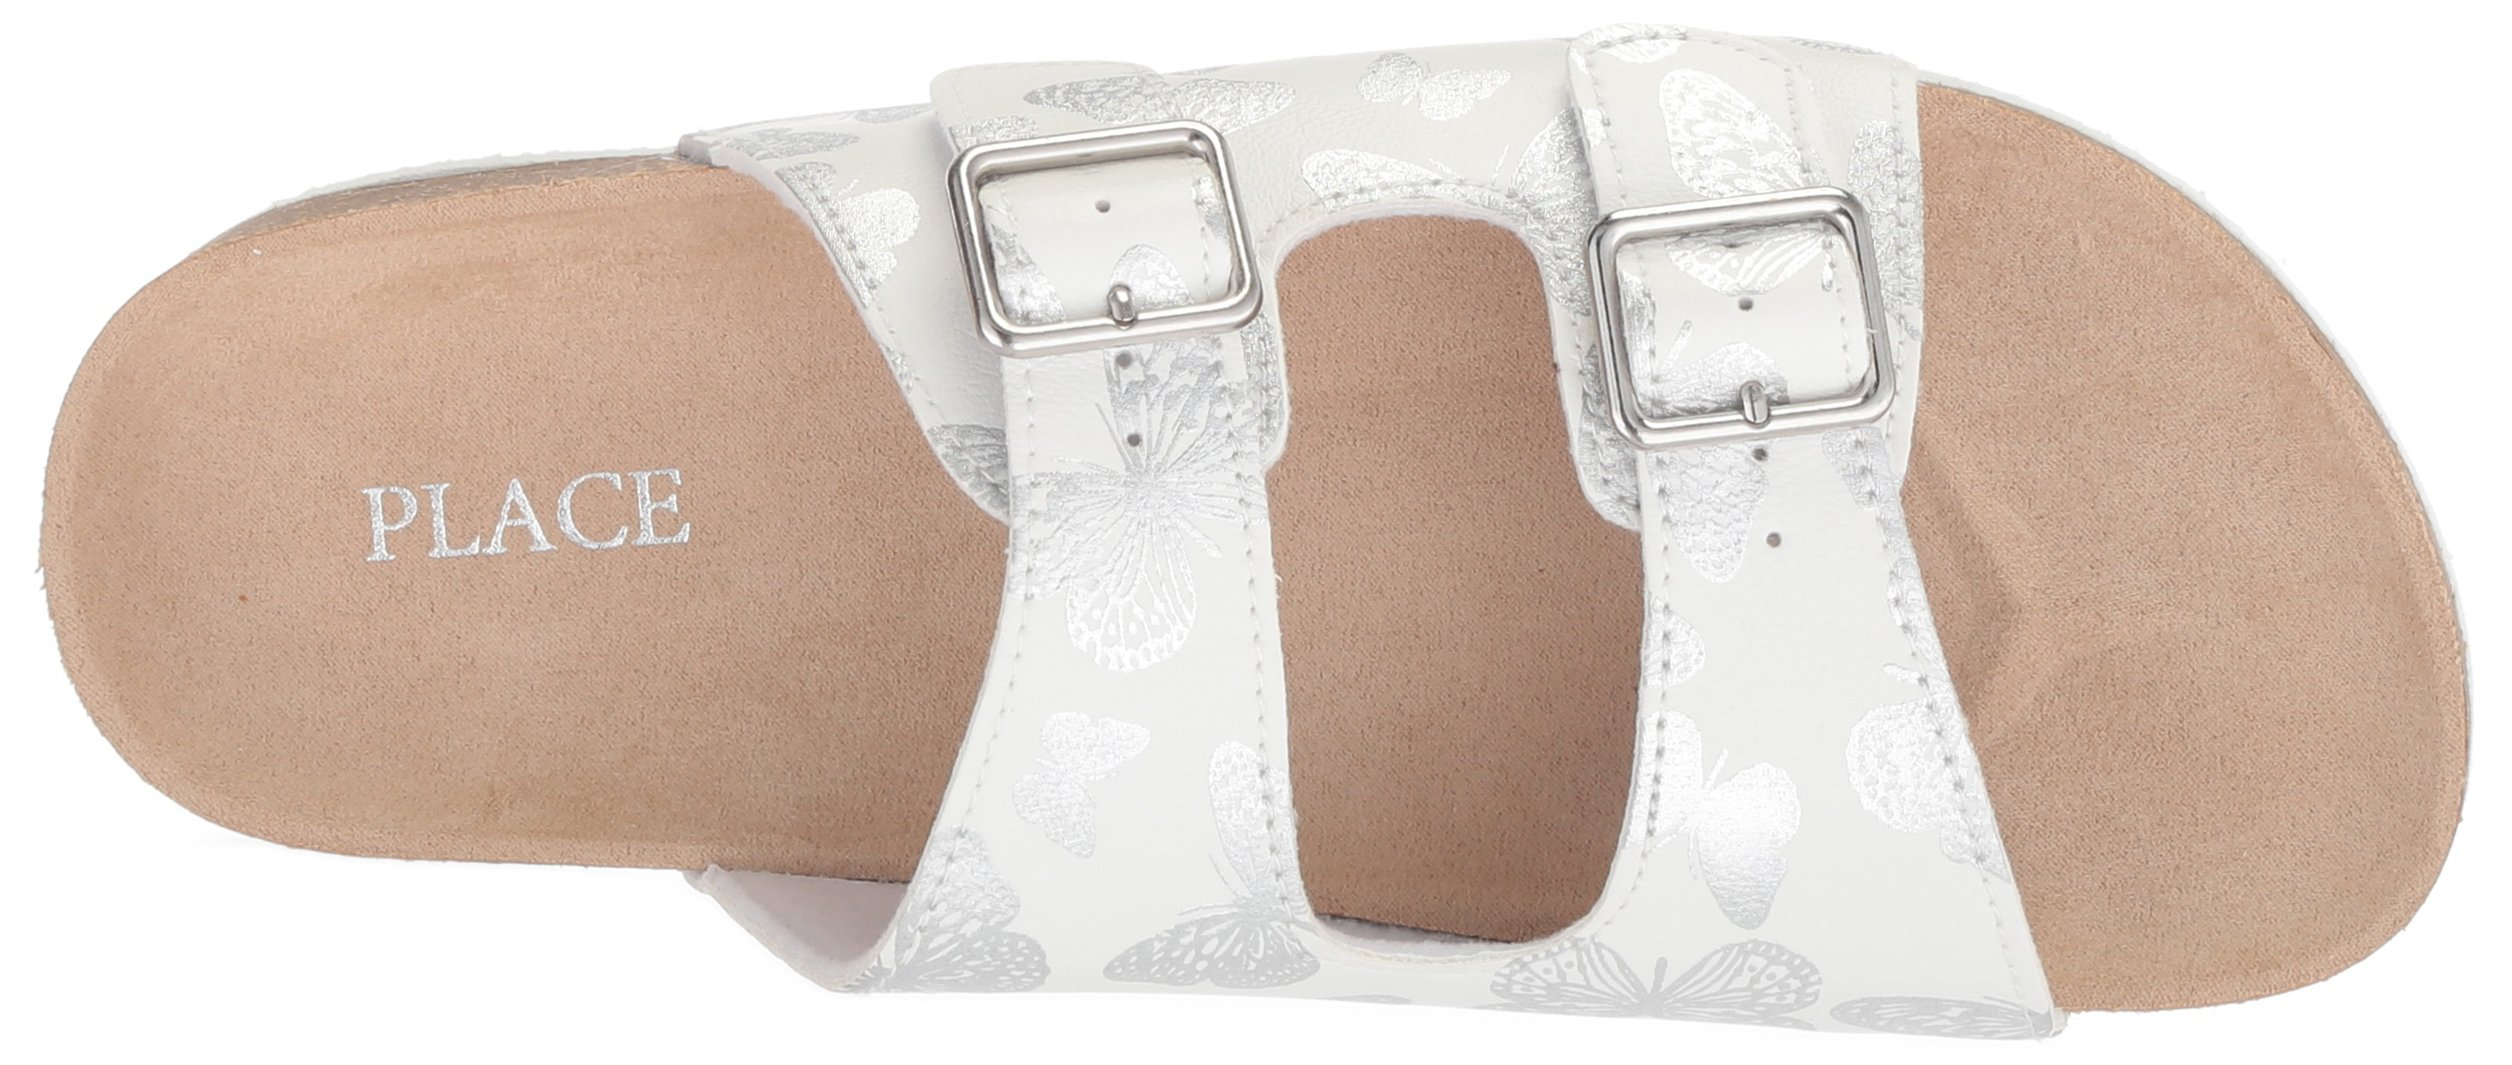 The Children's Place Girls' BG Butterfly LUN Flat Sandal, White, Youth 11 Medium US Big Kid by The Children's Place (Image #7)